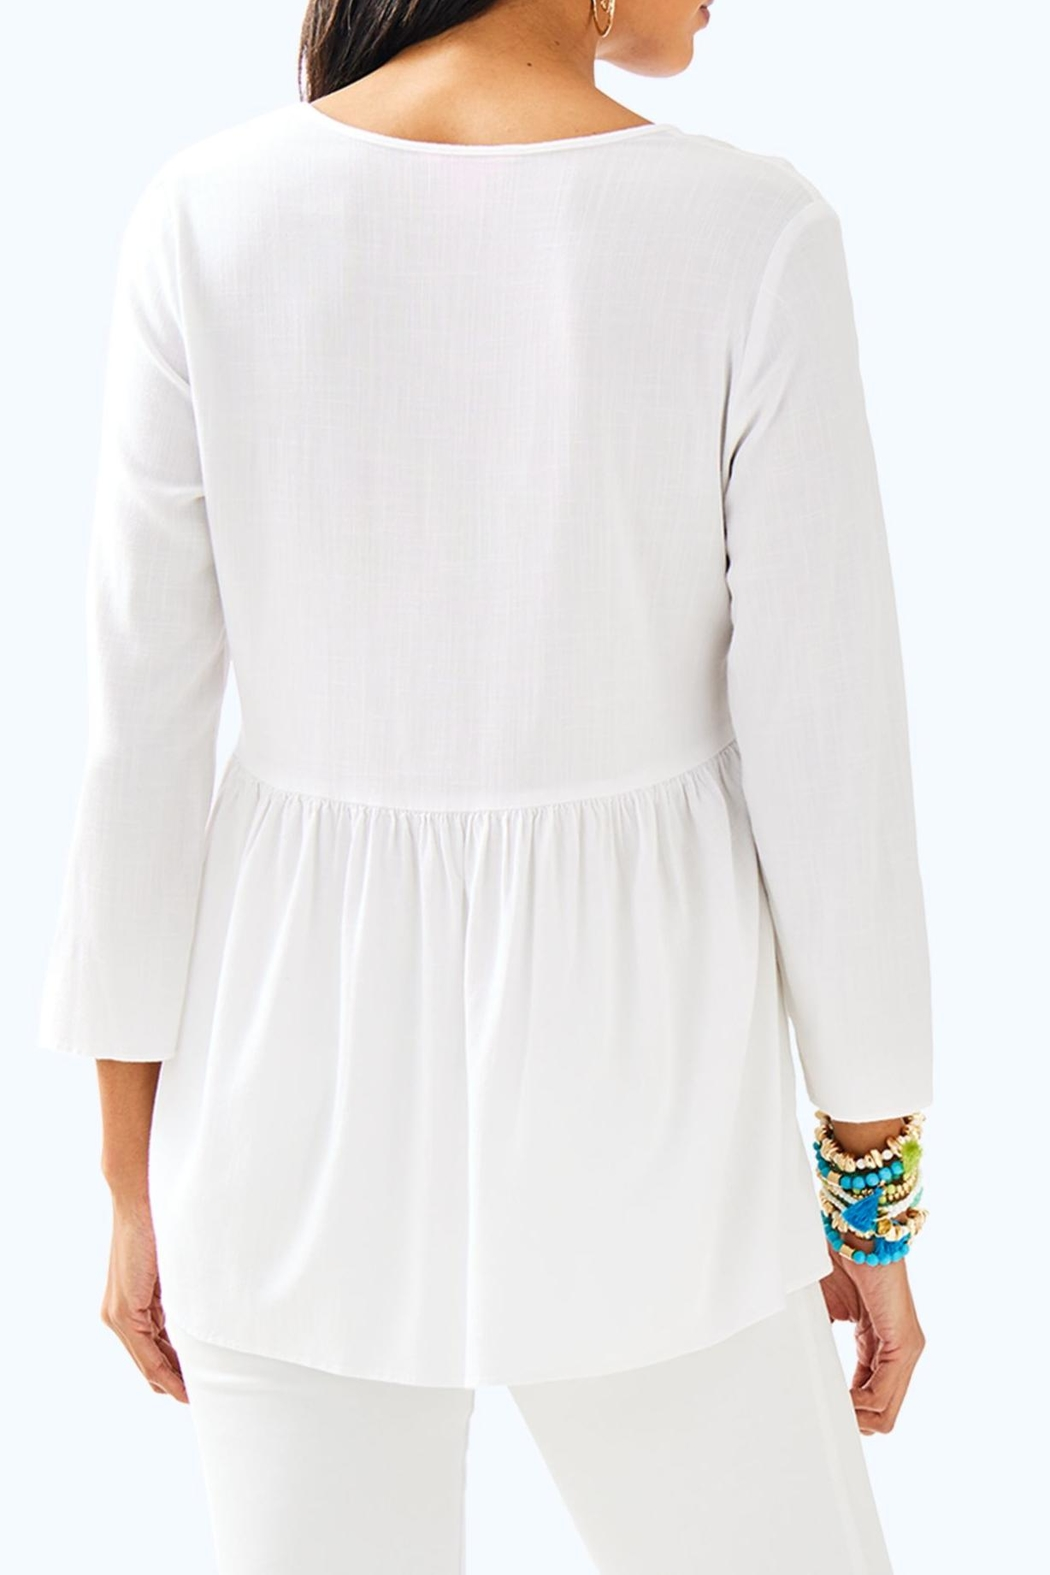 Lilly Pulitzer Lyndsea Tunic - Front Full Image